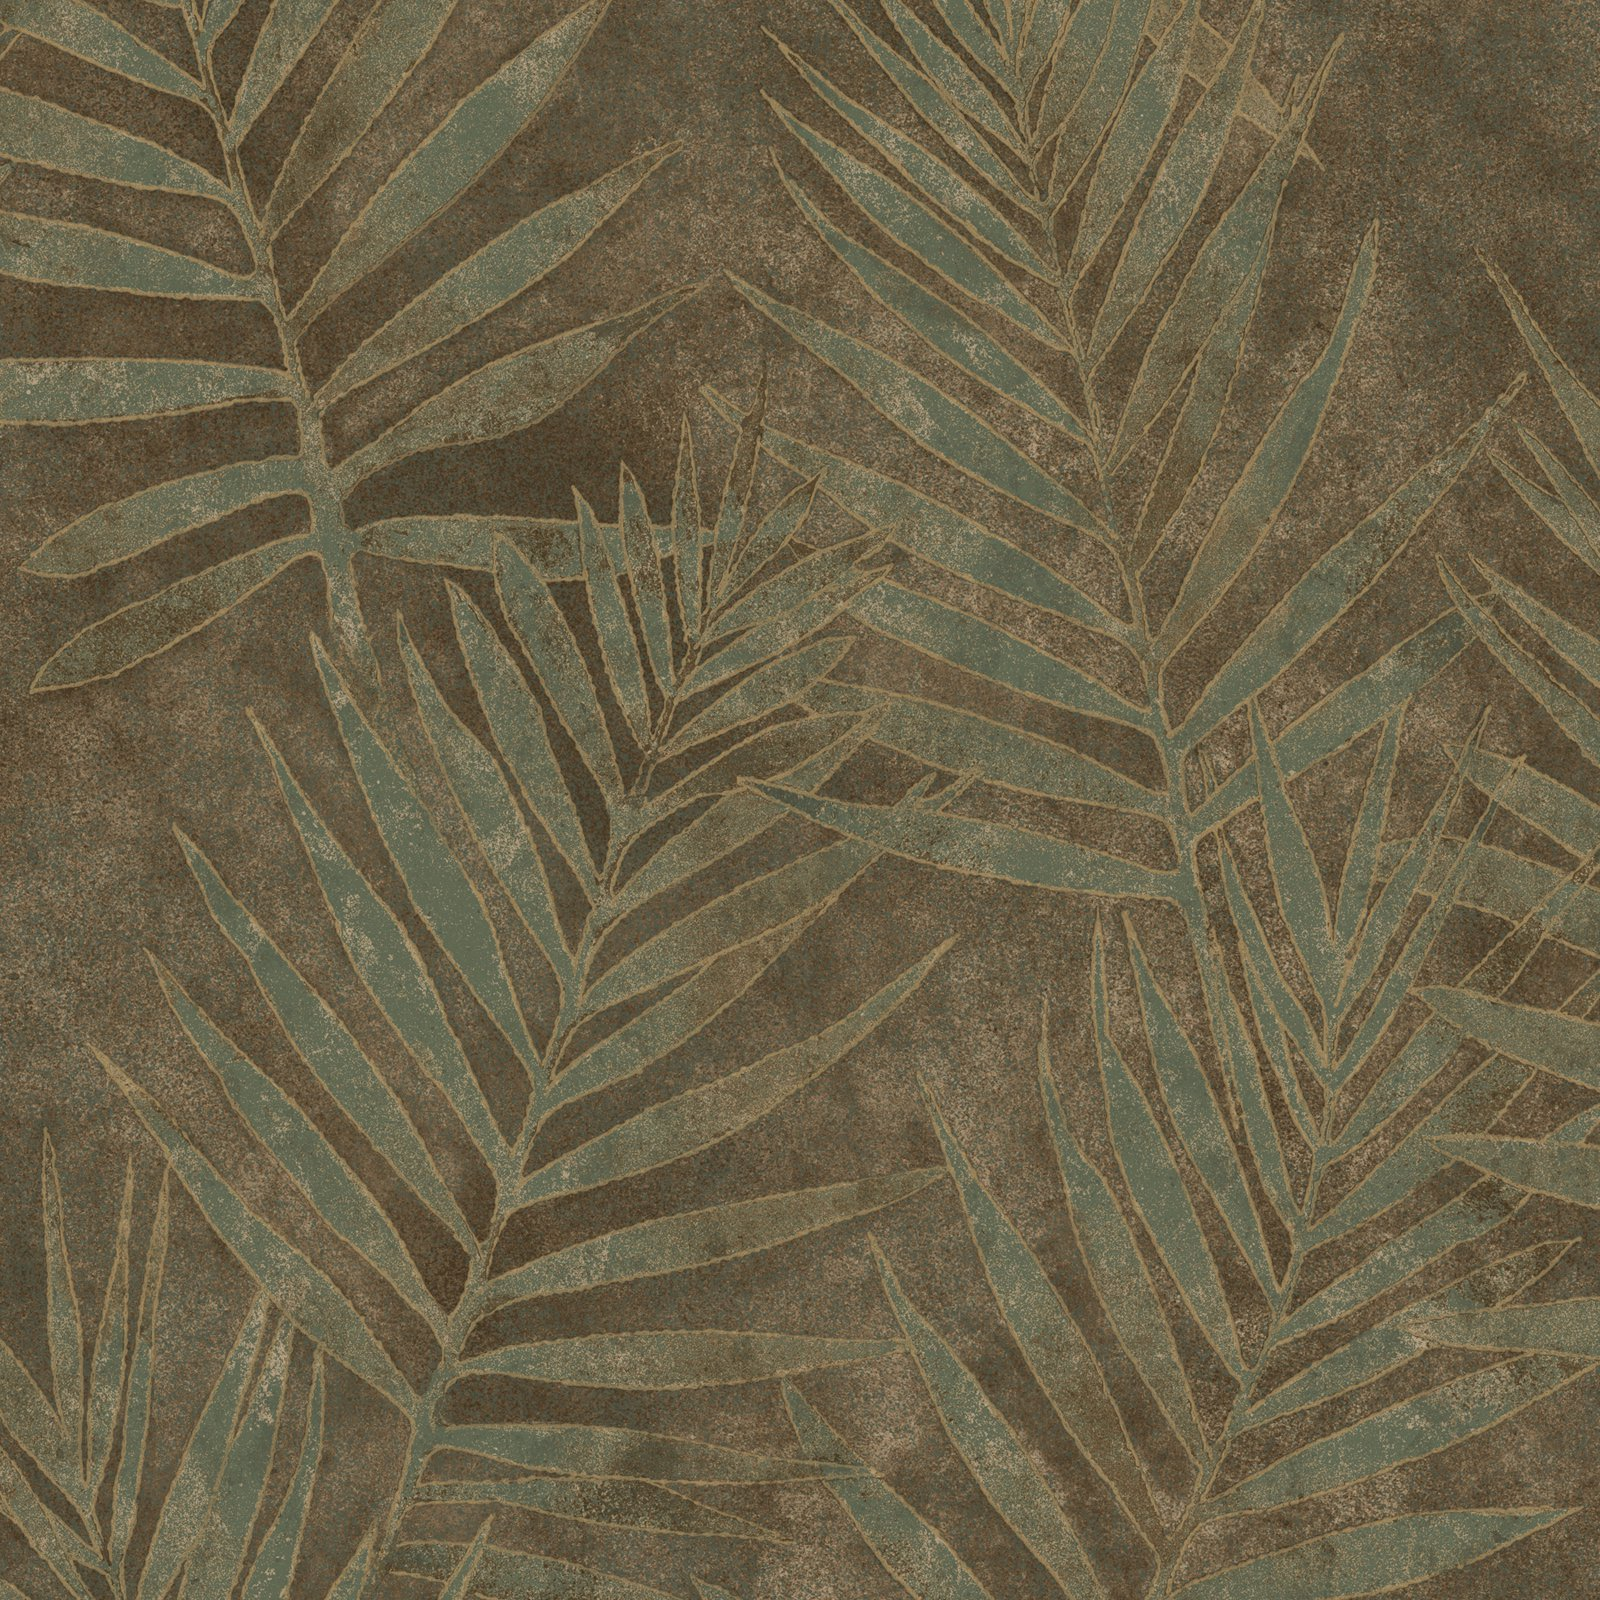 Warner Studios Grand Palms Leaves Wallpaper